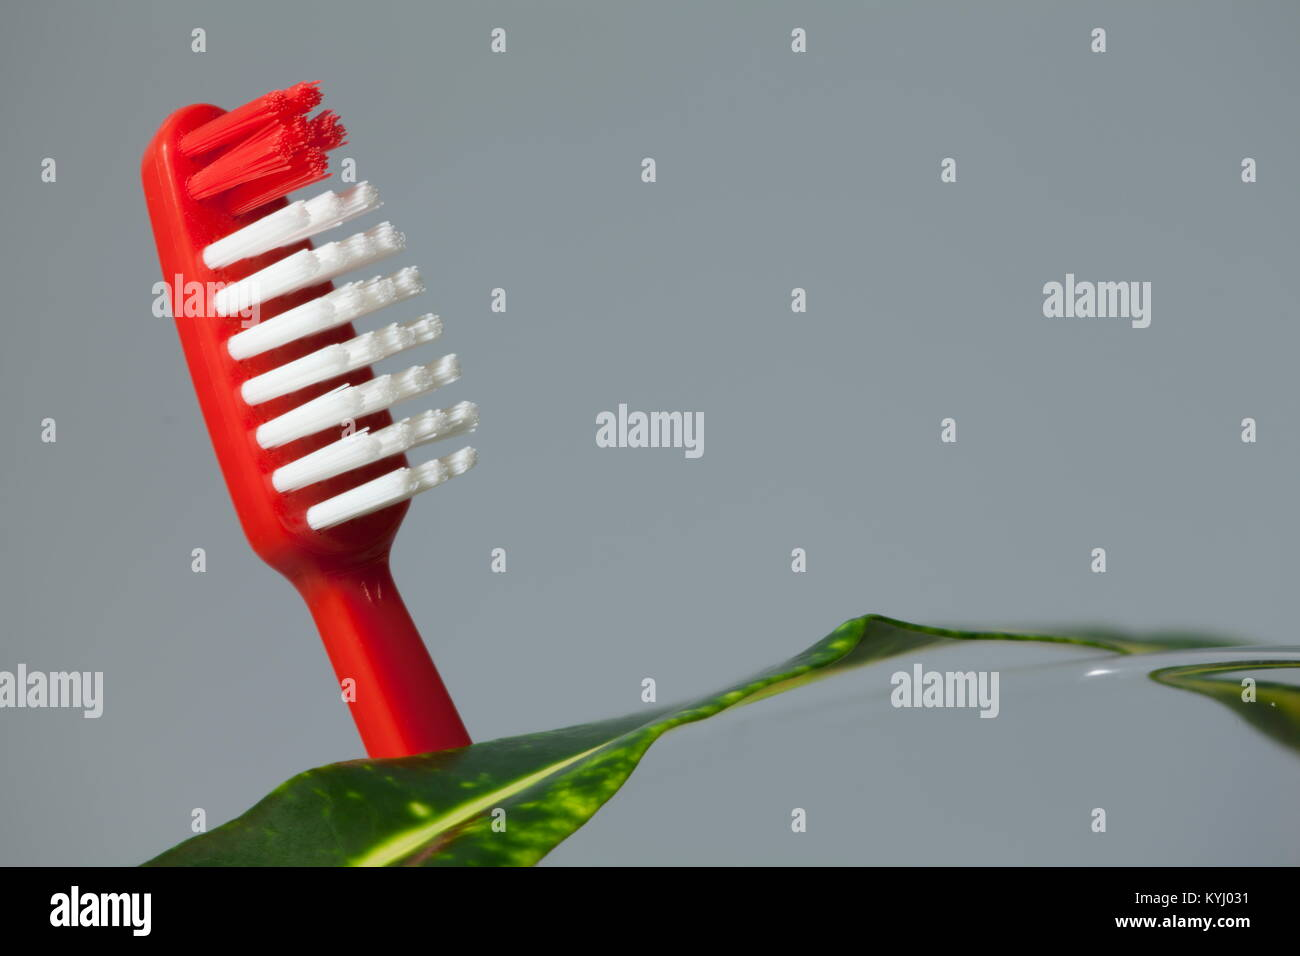 red toothbrush and green leaf concept of cleanliness. Copy space - Stock Image